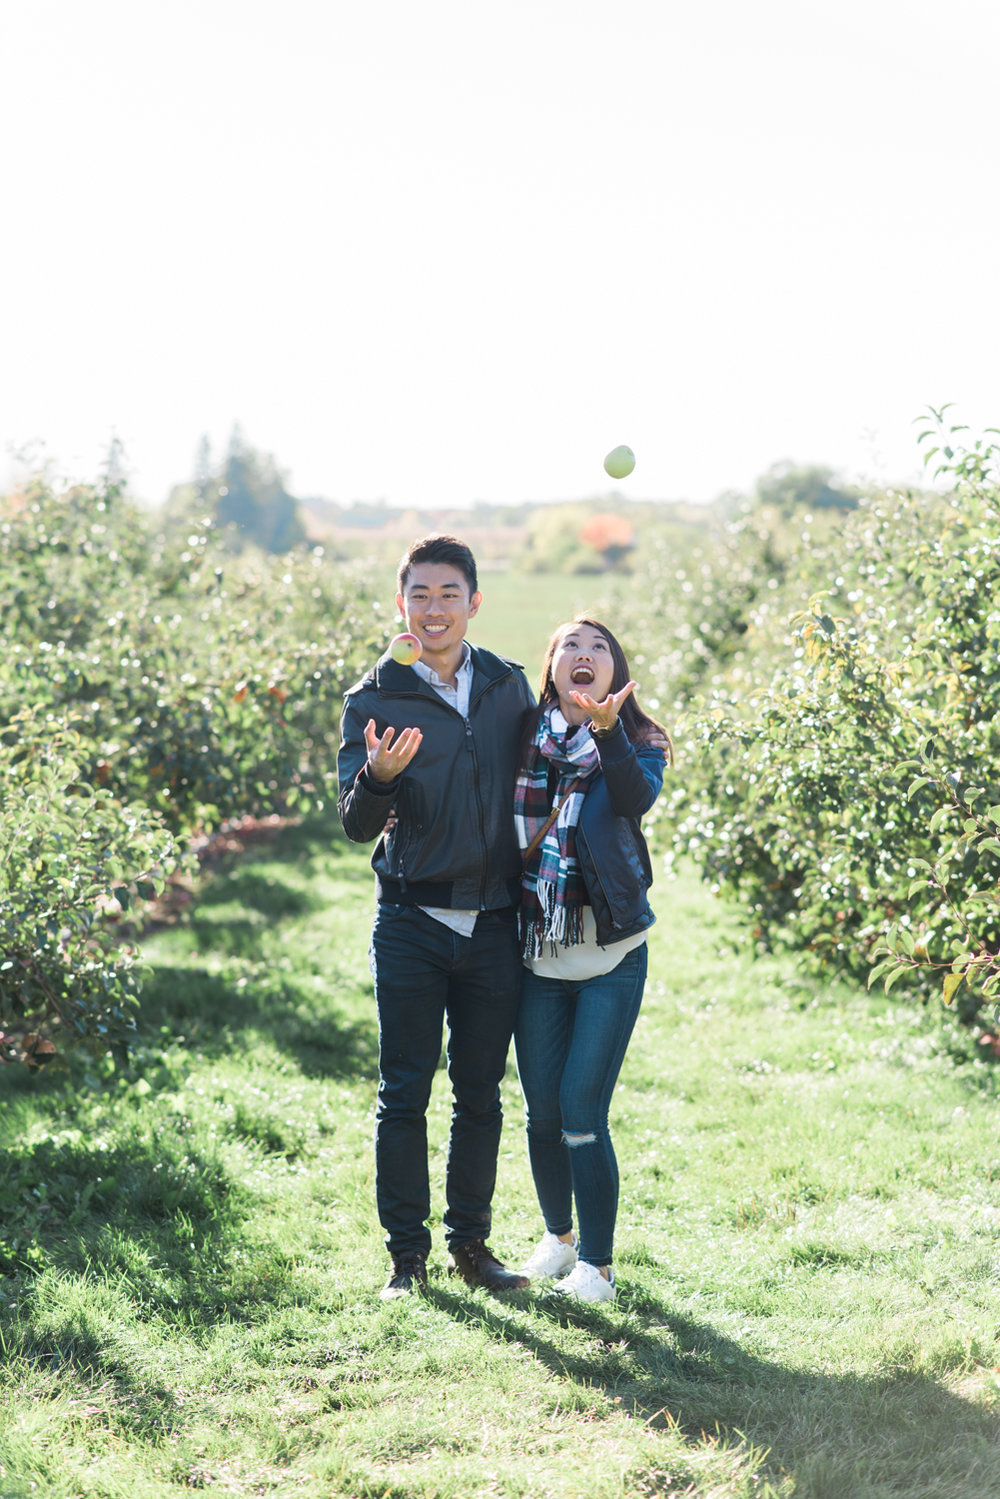 apple-picking-9.jpg